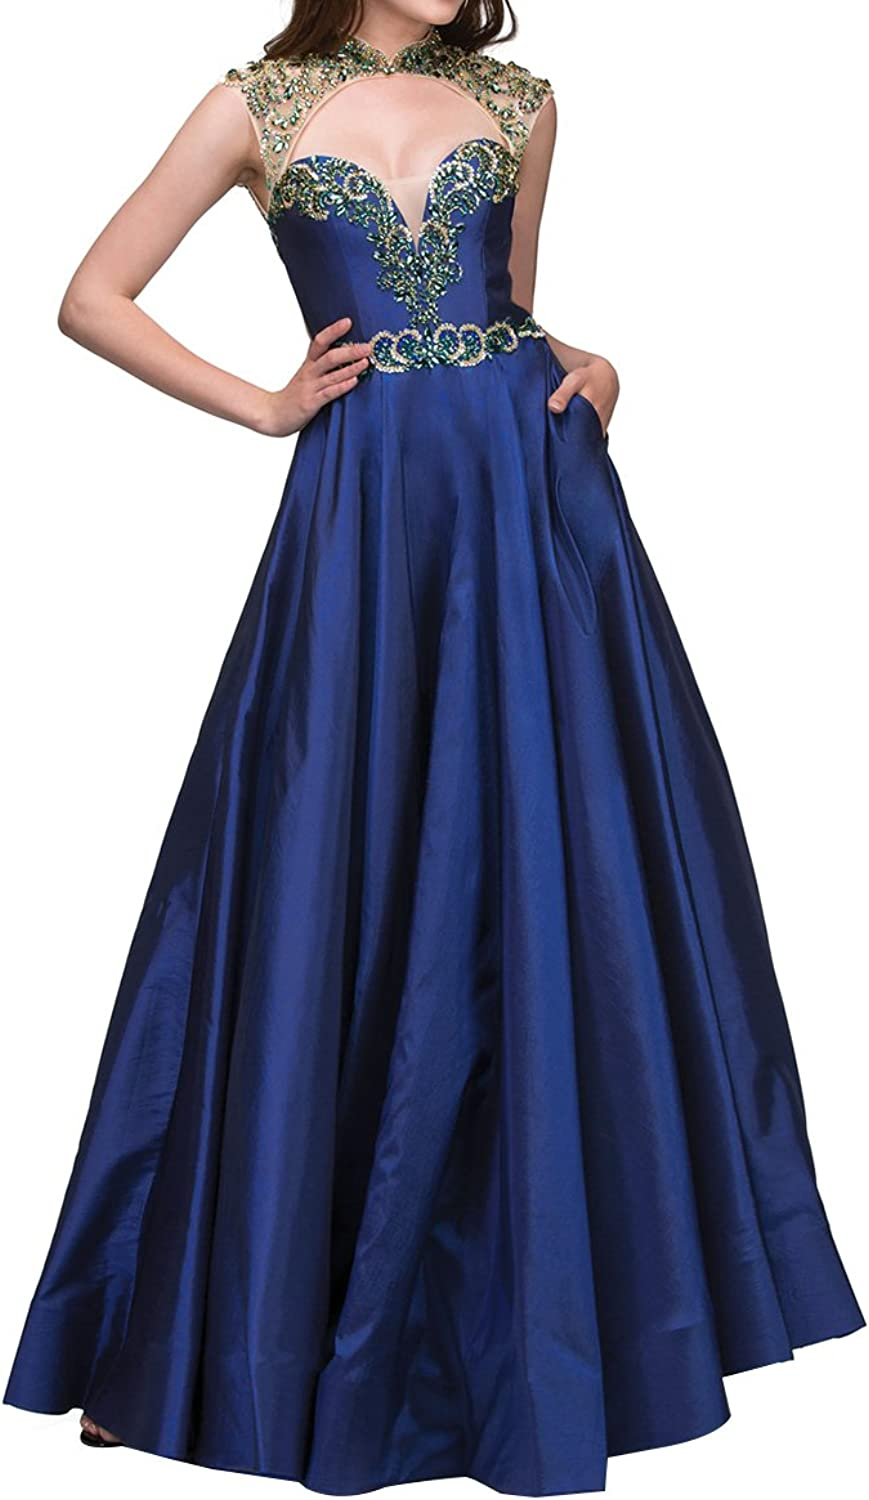 Homdor Beaded High Neck Prom Dresses Long Sweetheart ALine Backless Evening Formal Gown